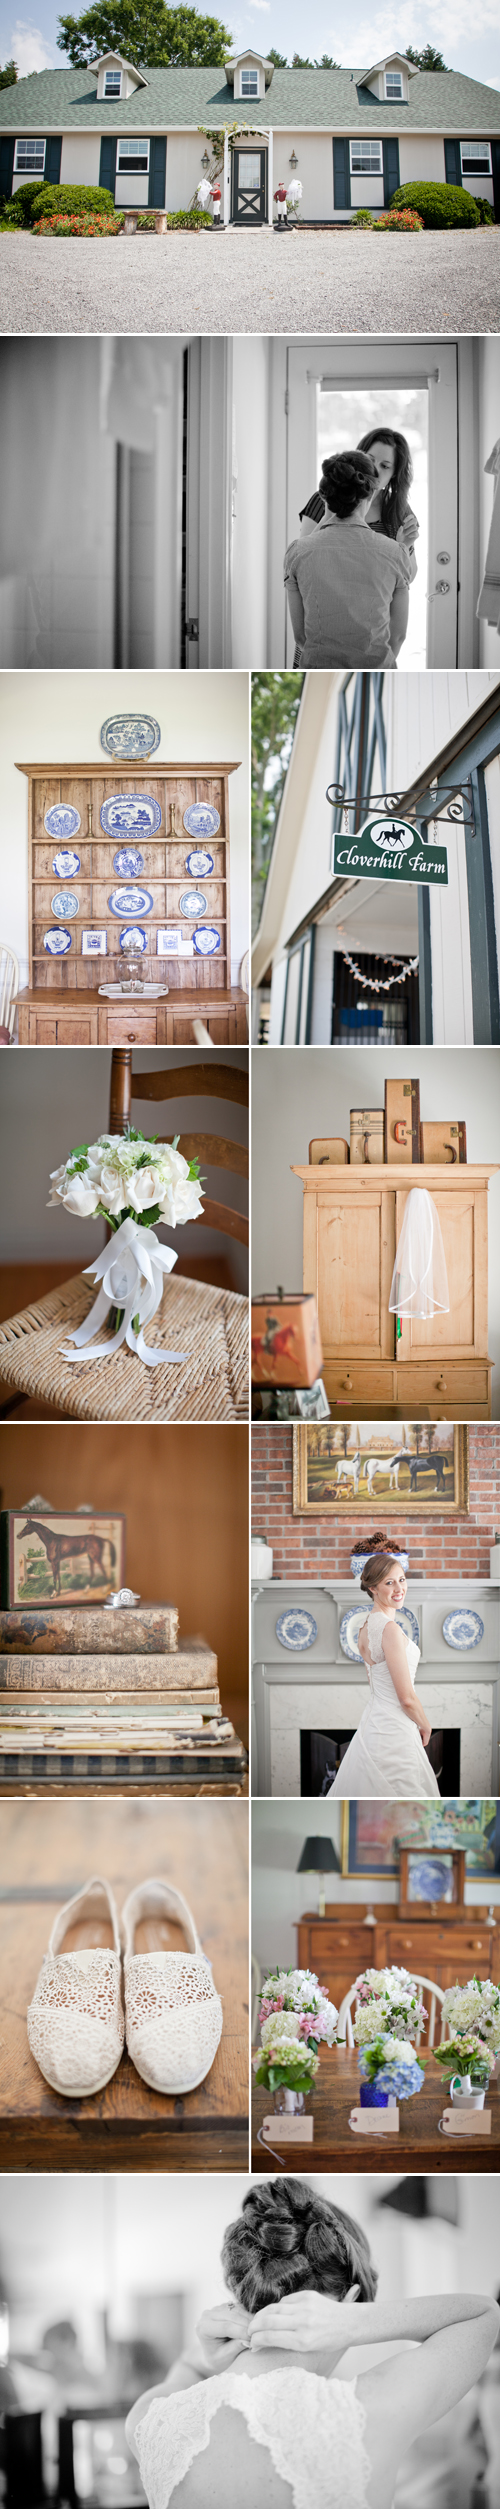 Lily Glass Photography Southern Wedding